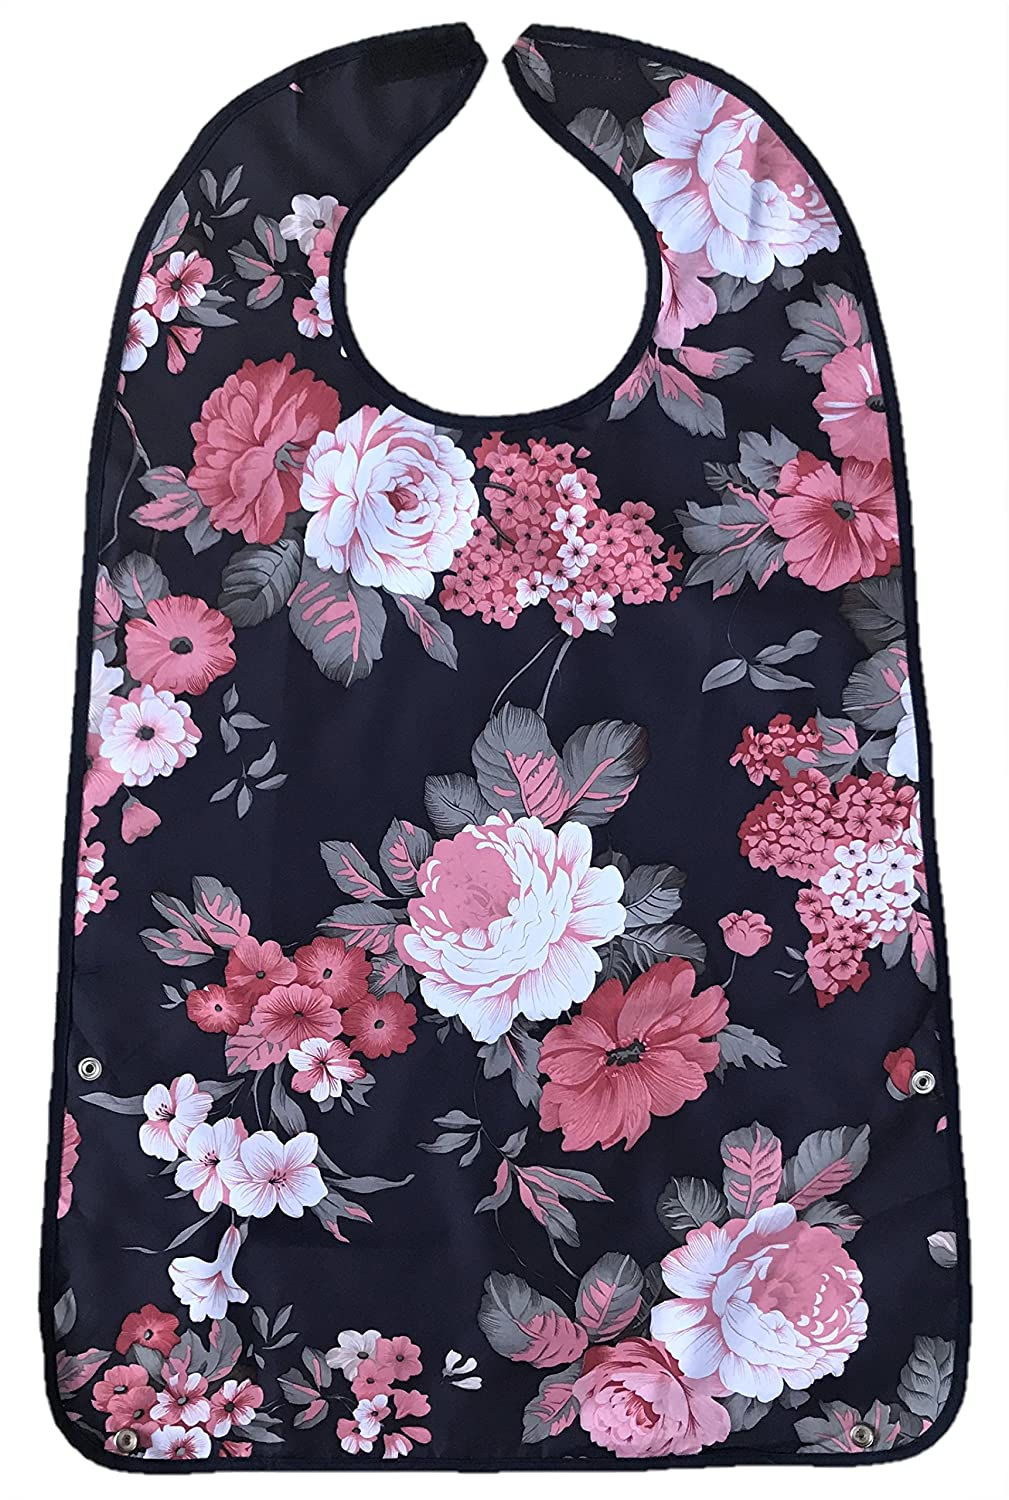 NEW ADULT BIB APRON CLOTHES PROTECTOR WIPE PVC WATERPROOF ELDERLY DINING WASHABLE PRETTY ROSES CHIC FLORAL Harrington Marley